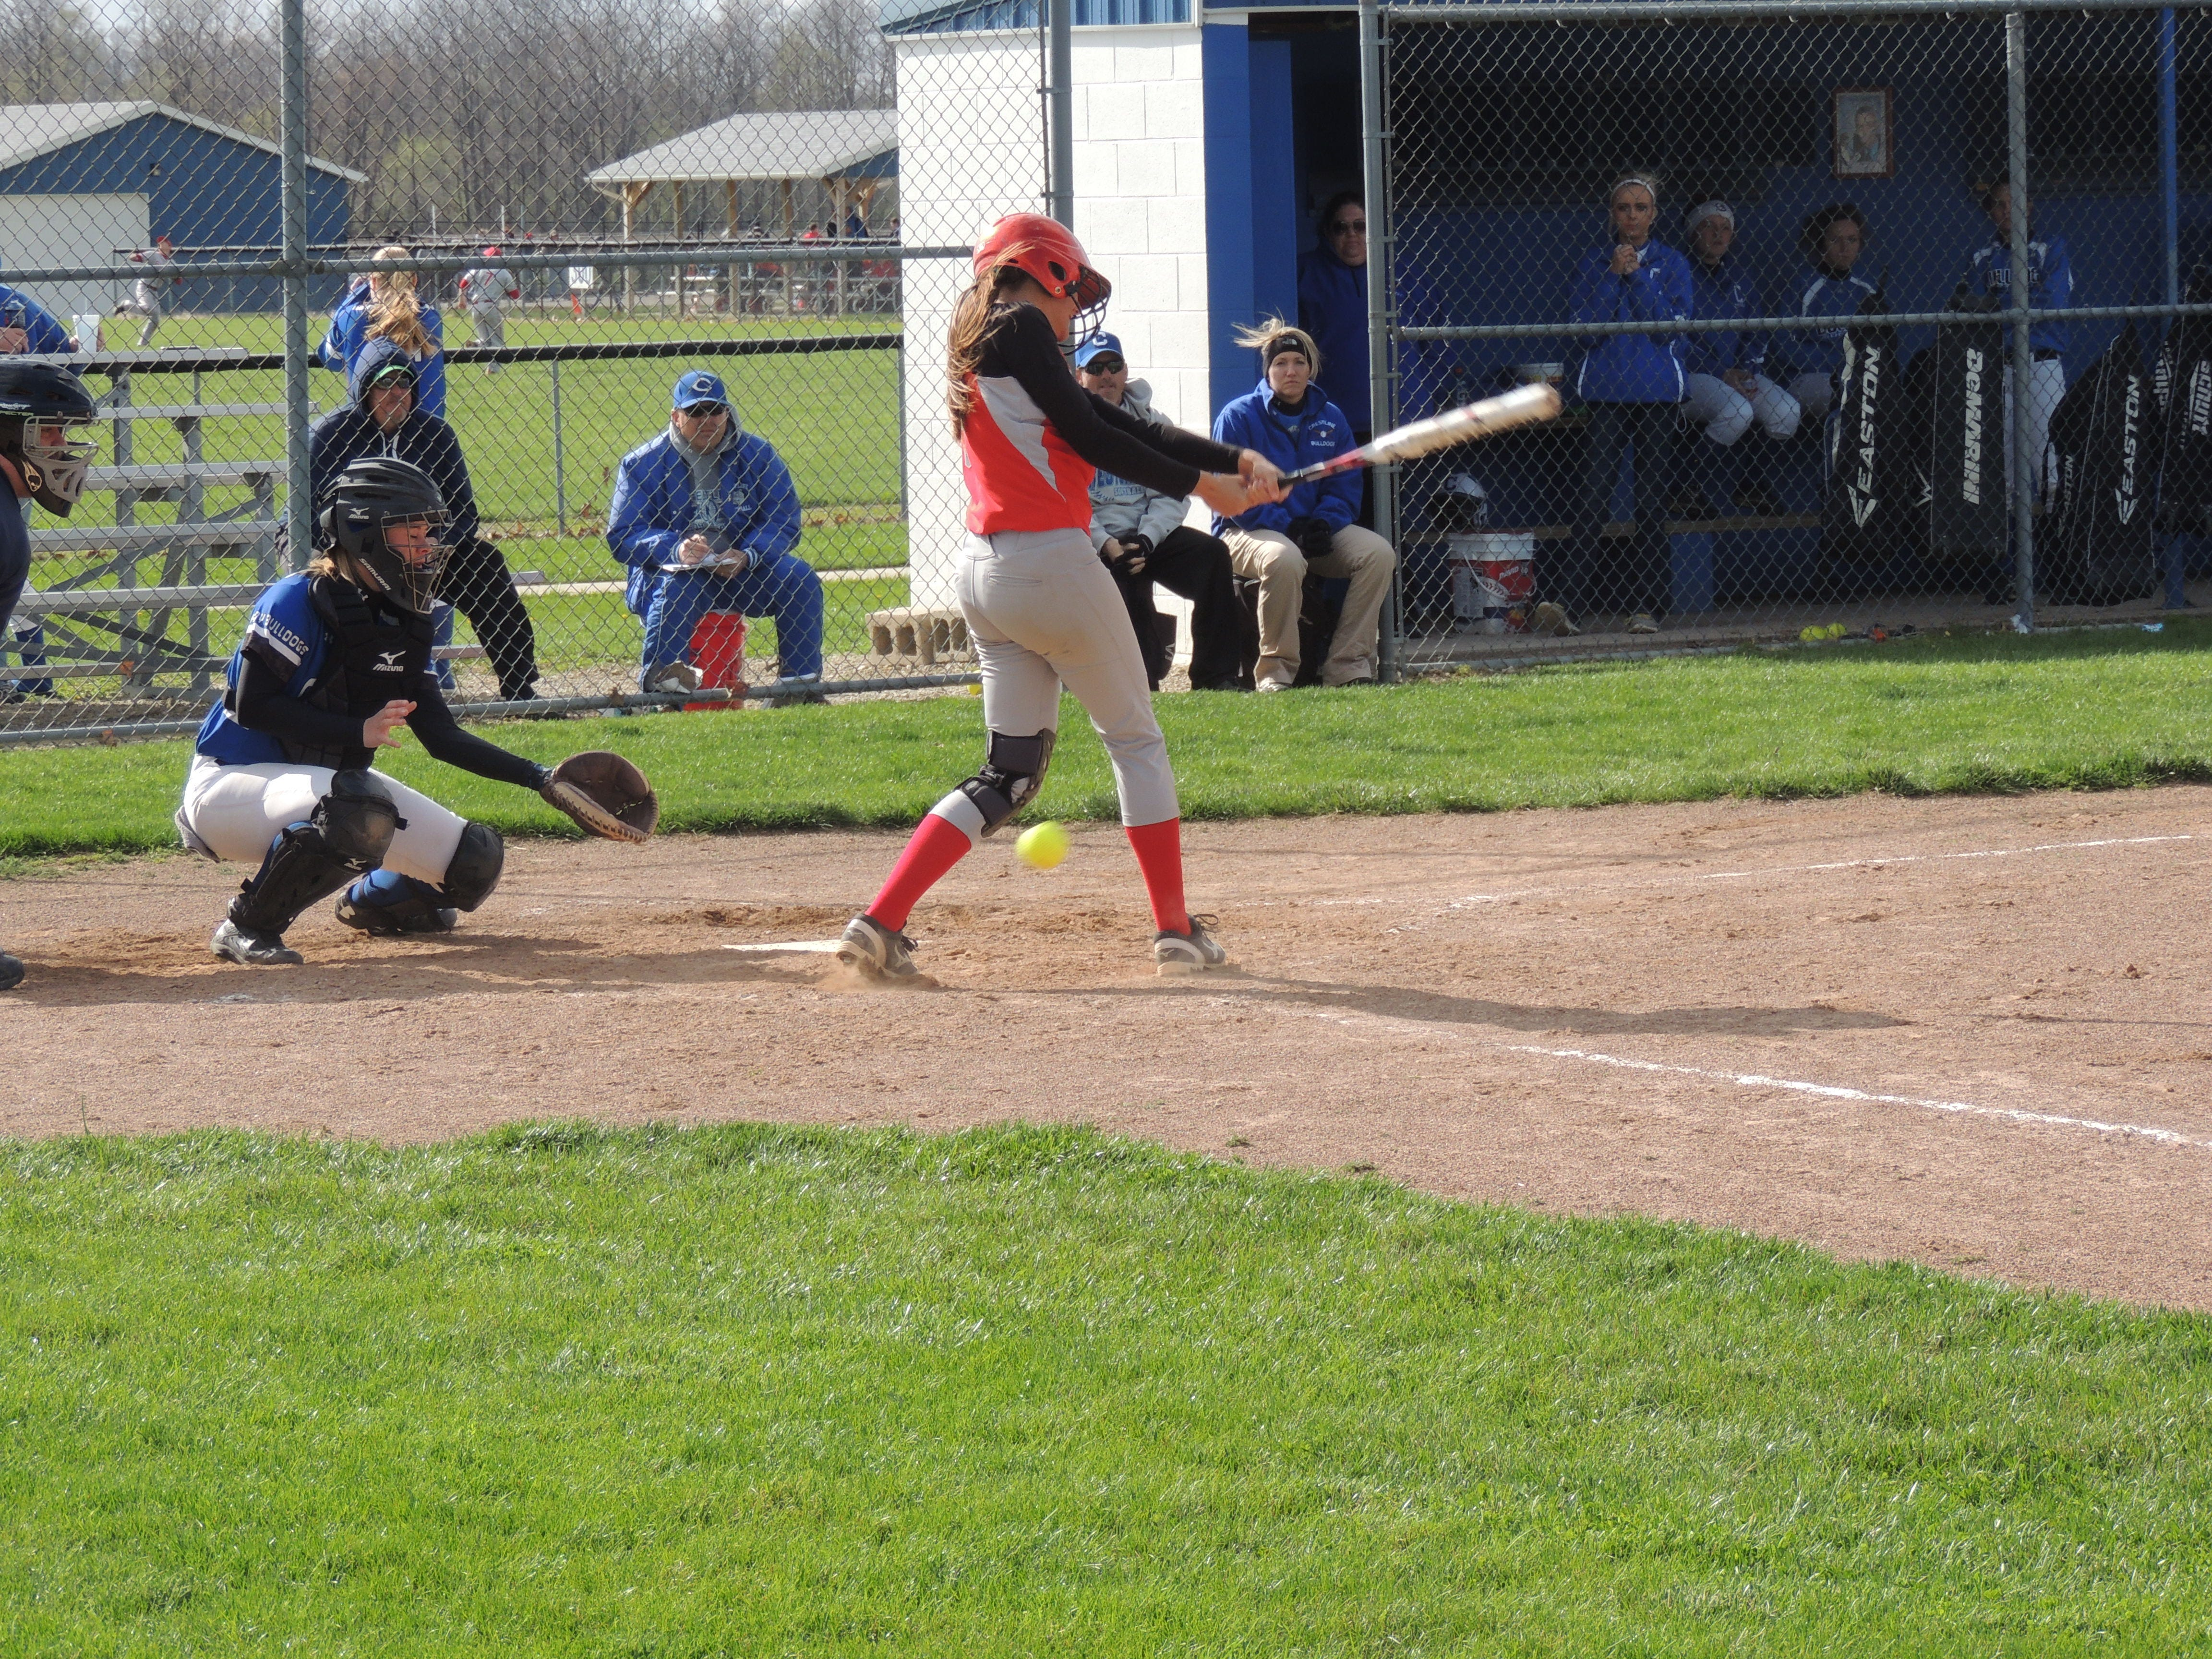 Buckeye Central senior Sierra Hanes fouls a pitch off in the fifth inning of the Buckettes' 14-7 loss to Crestline. Hanes hit two home runs in the game.